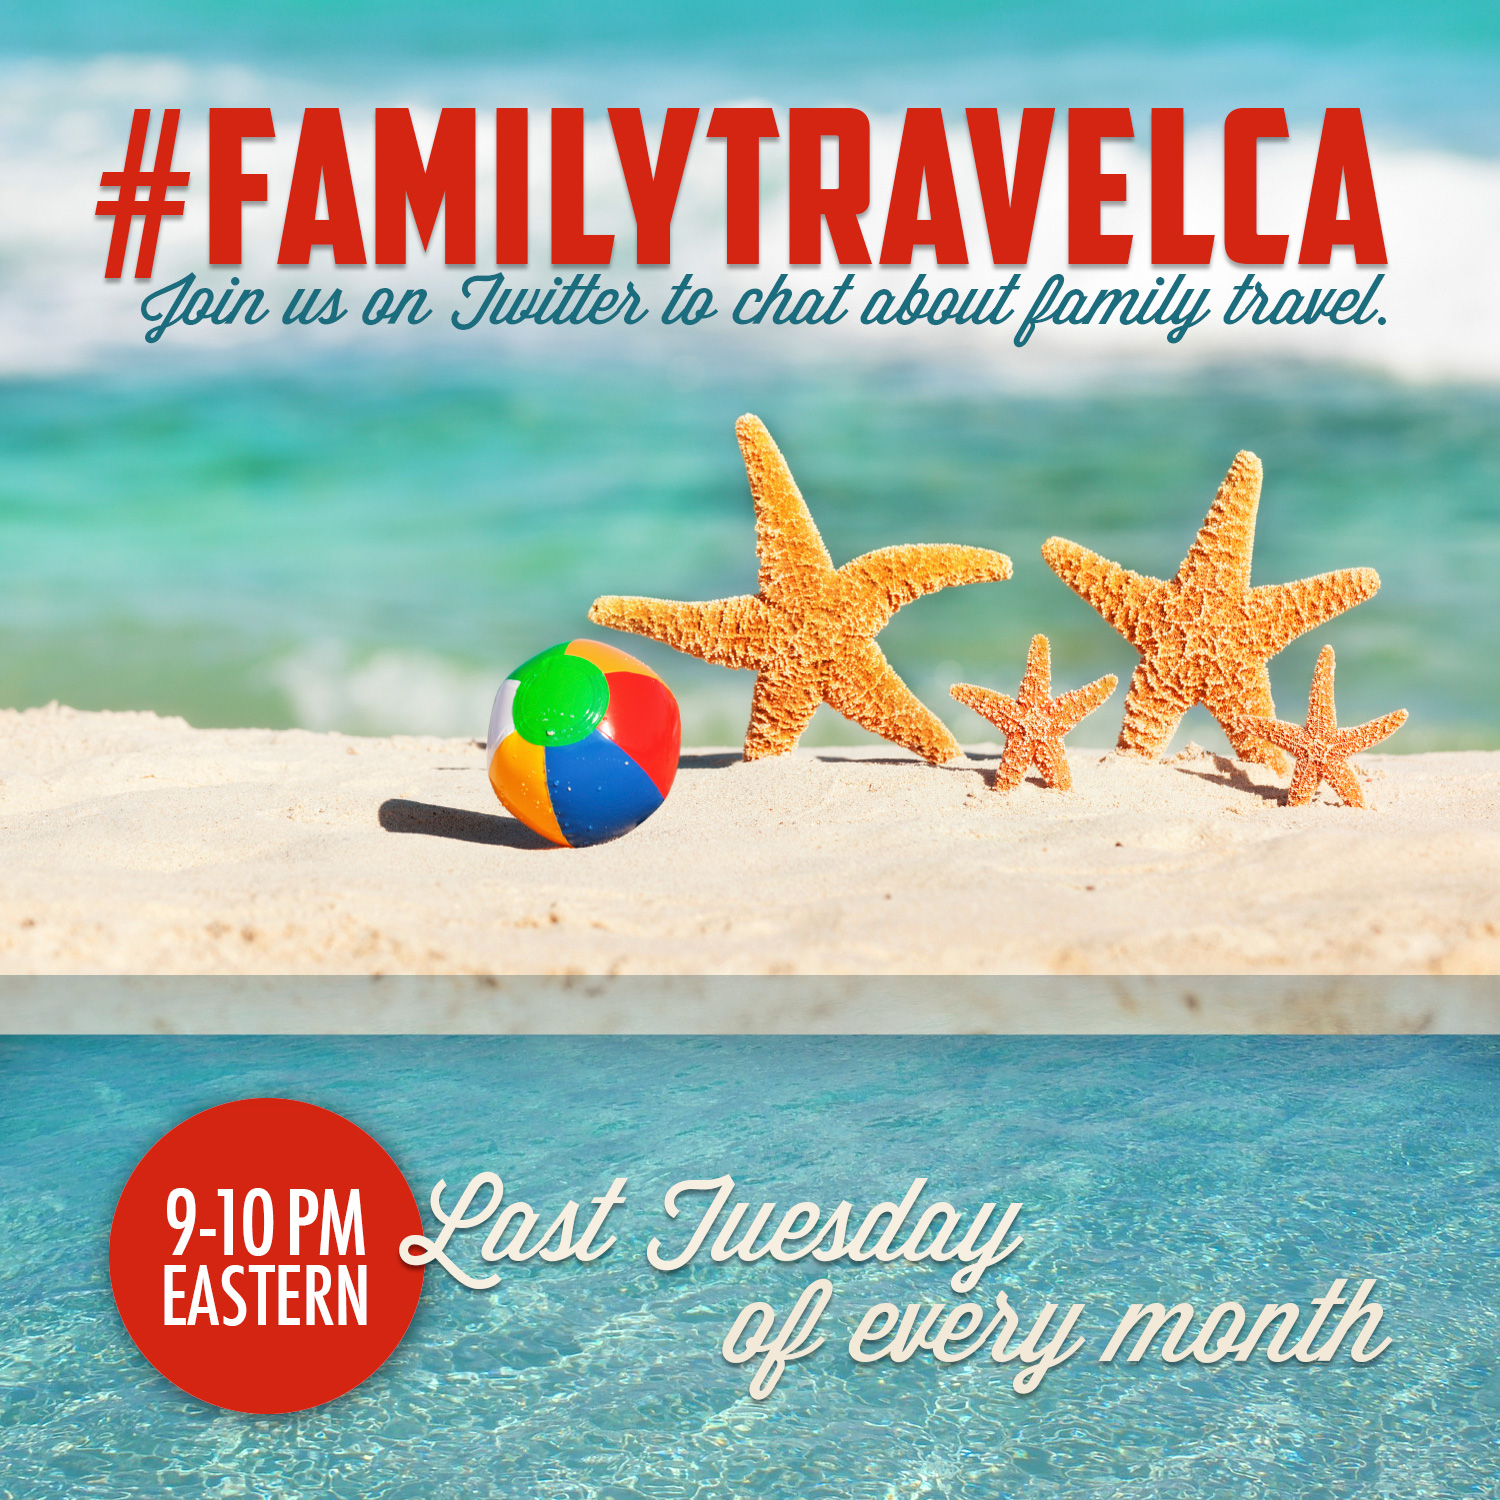 Travel in Style is the Topic at the next #FamilyTravelCA Twitter Party